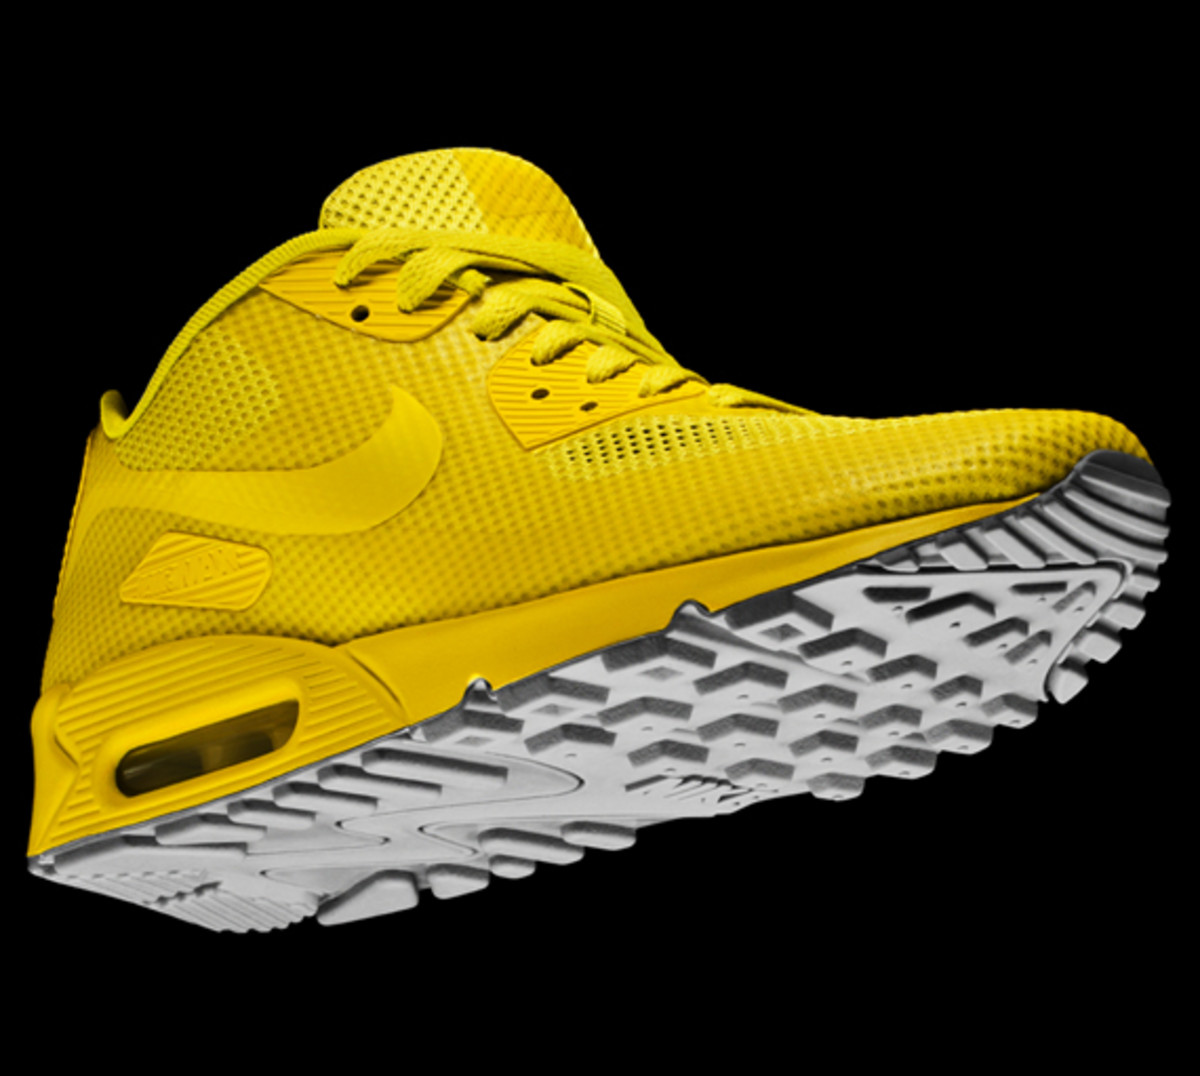 nike-sportswear-hyperfuse-air-max-90-04